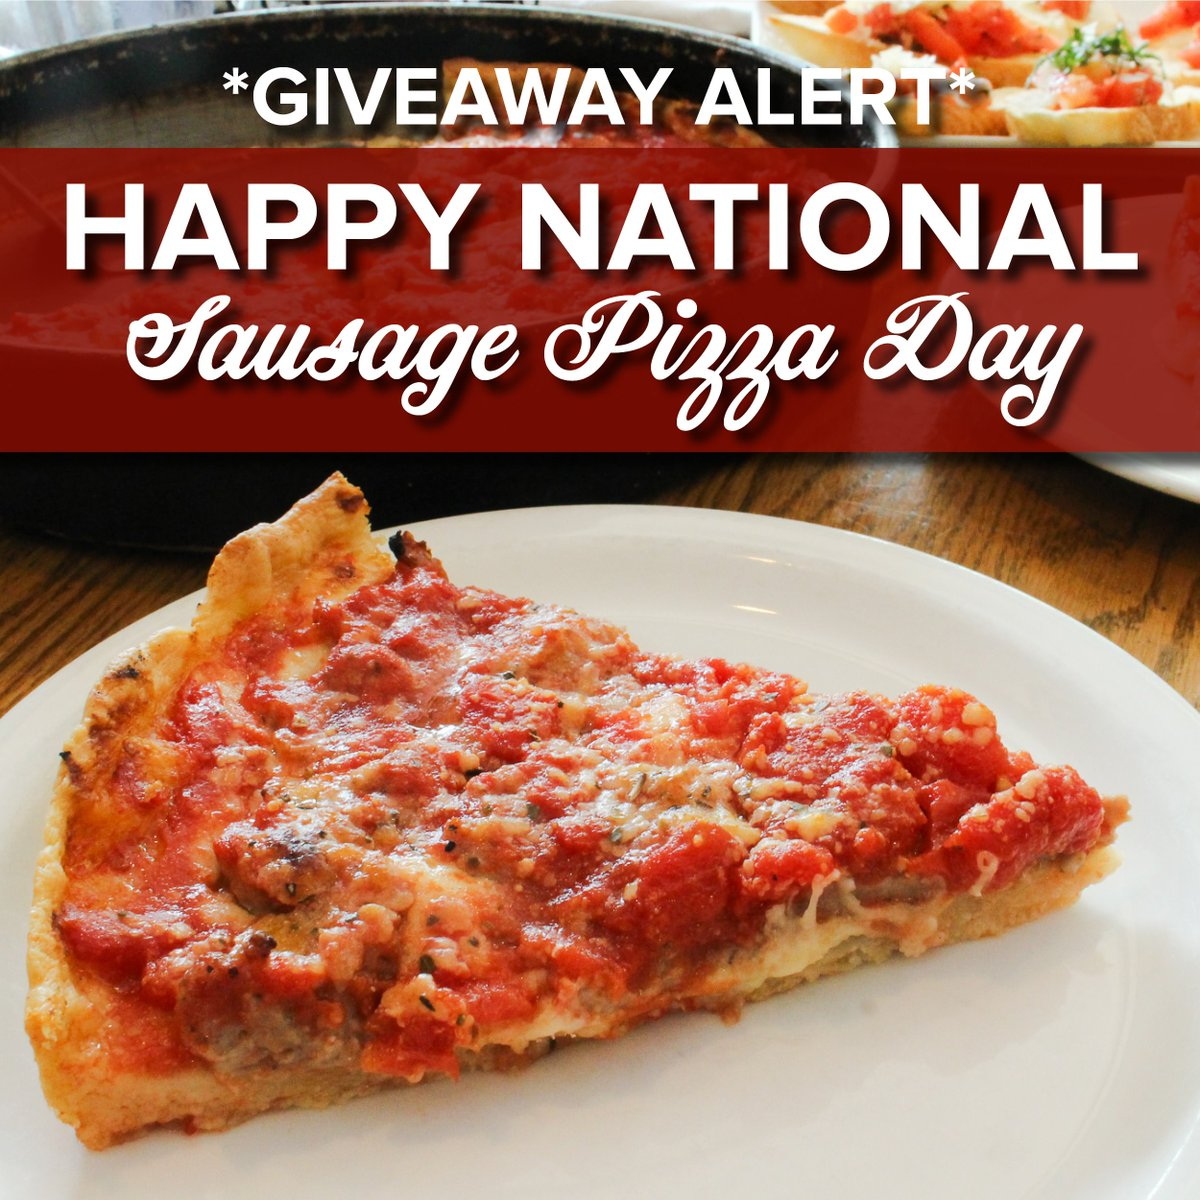 It&#39;s #NationalSausagePizzaDay and we're celebrating the king of all Chicago deep dish pizzas, the Malnati Chicago Classic, and giving away a $25 gift card! To enter, follow us and tweet a photo using #MalnatiChicagoClassic by 11:59pm central time today.<br>http://pic.twitter.com/piLTHtjgsi